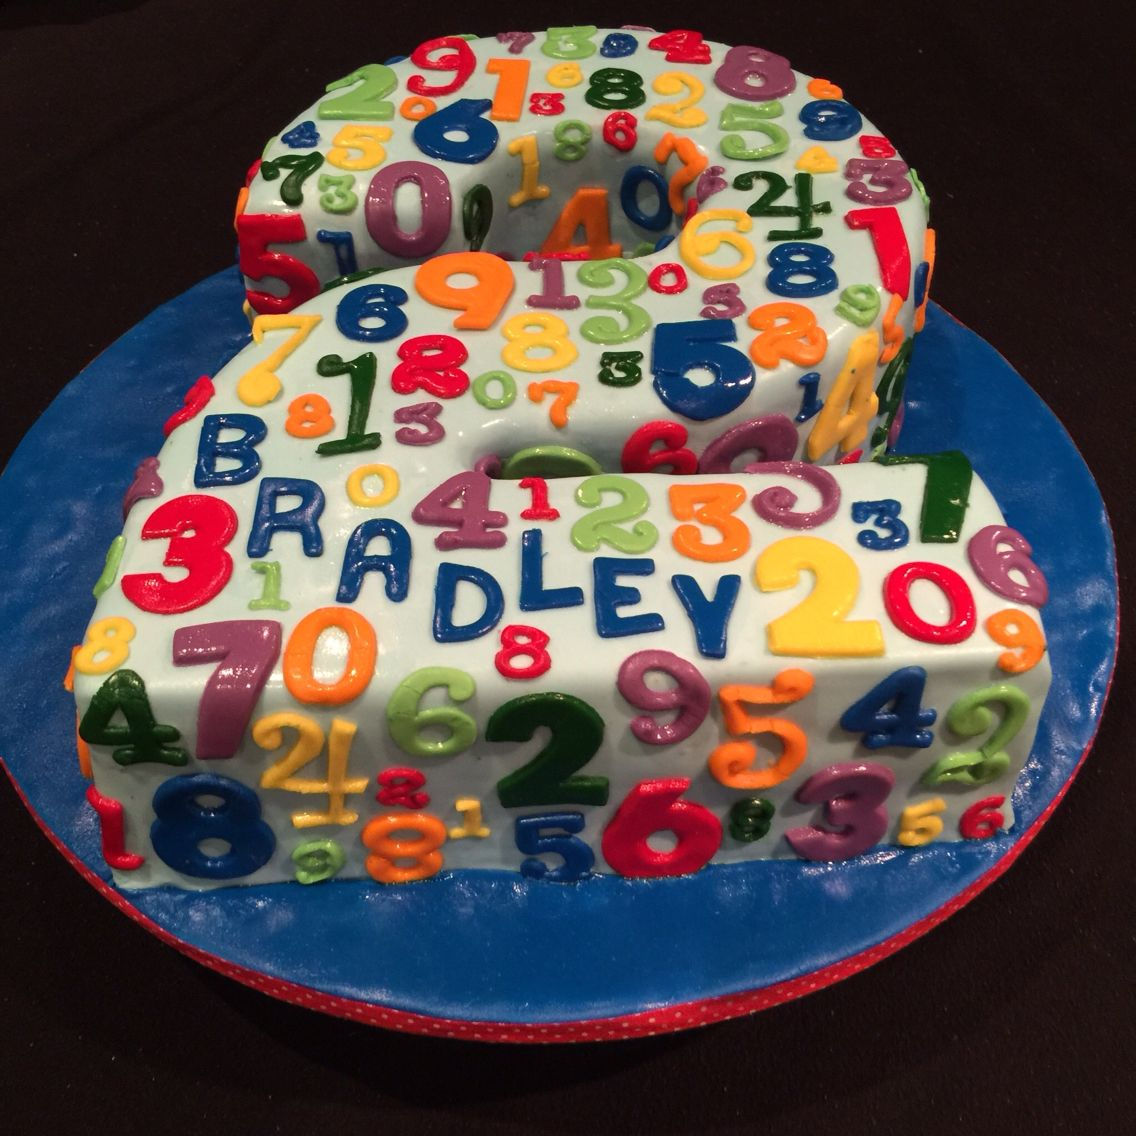 Number 2 Numbers And Counting Cake In 2021 Birthday Cake Kids Cake Cake Design